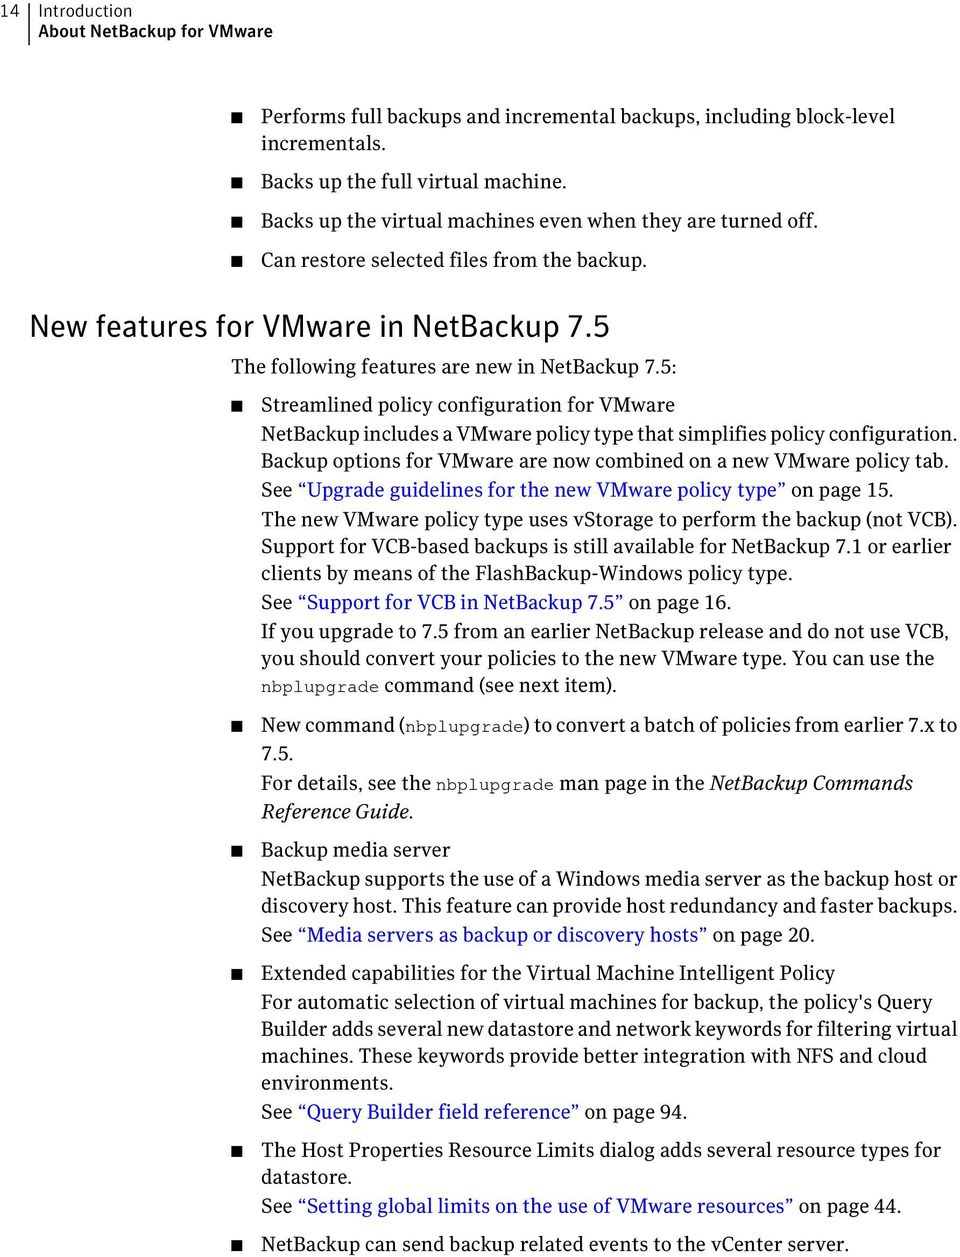 5: Streamlined policy configuration for VMware NetBackup includes a VMware policy type that simplifies policy configuration. Backup options for VMware are now combined on a new VMware policy tab.